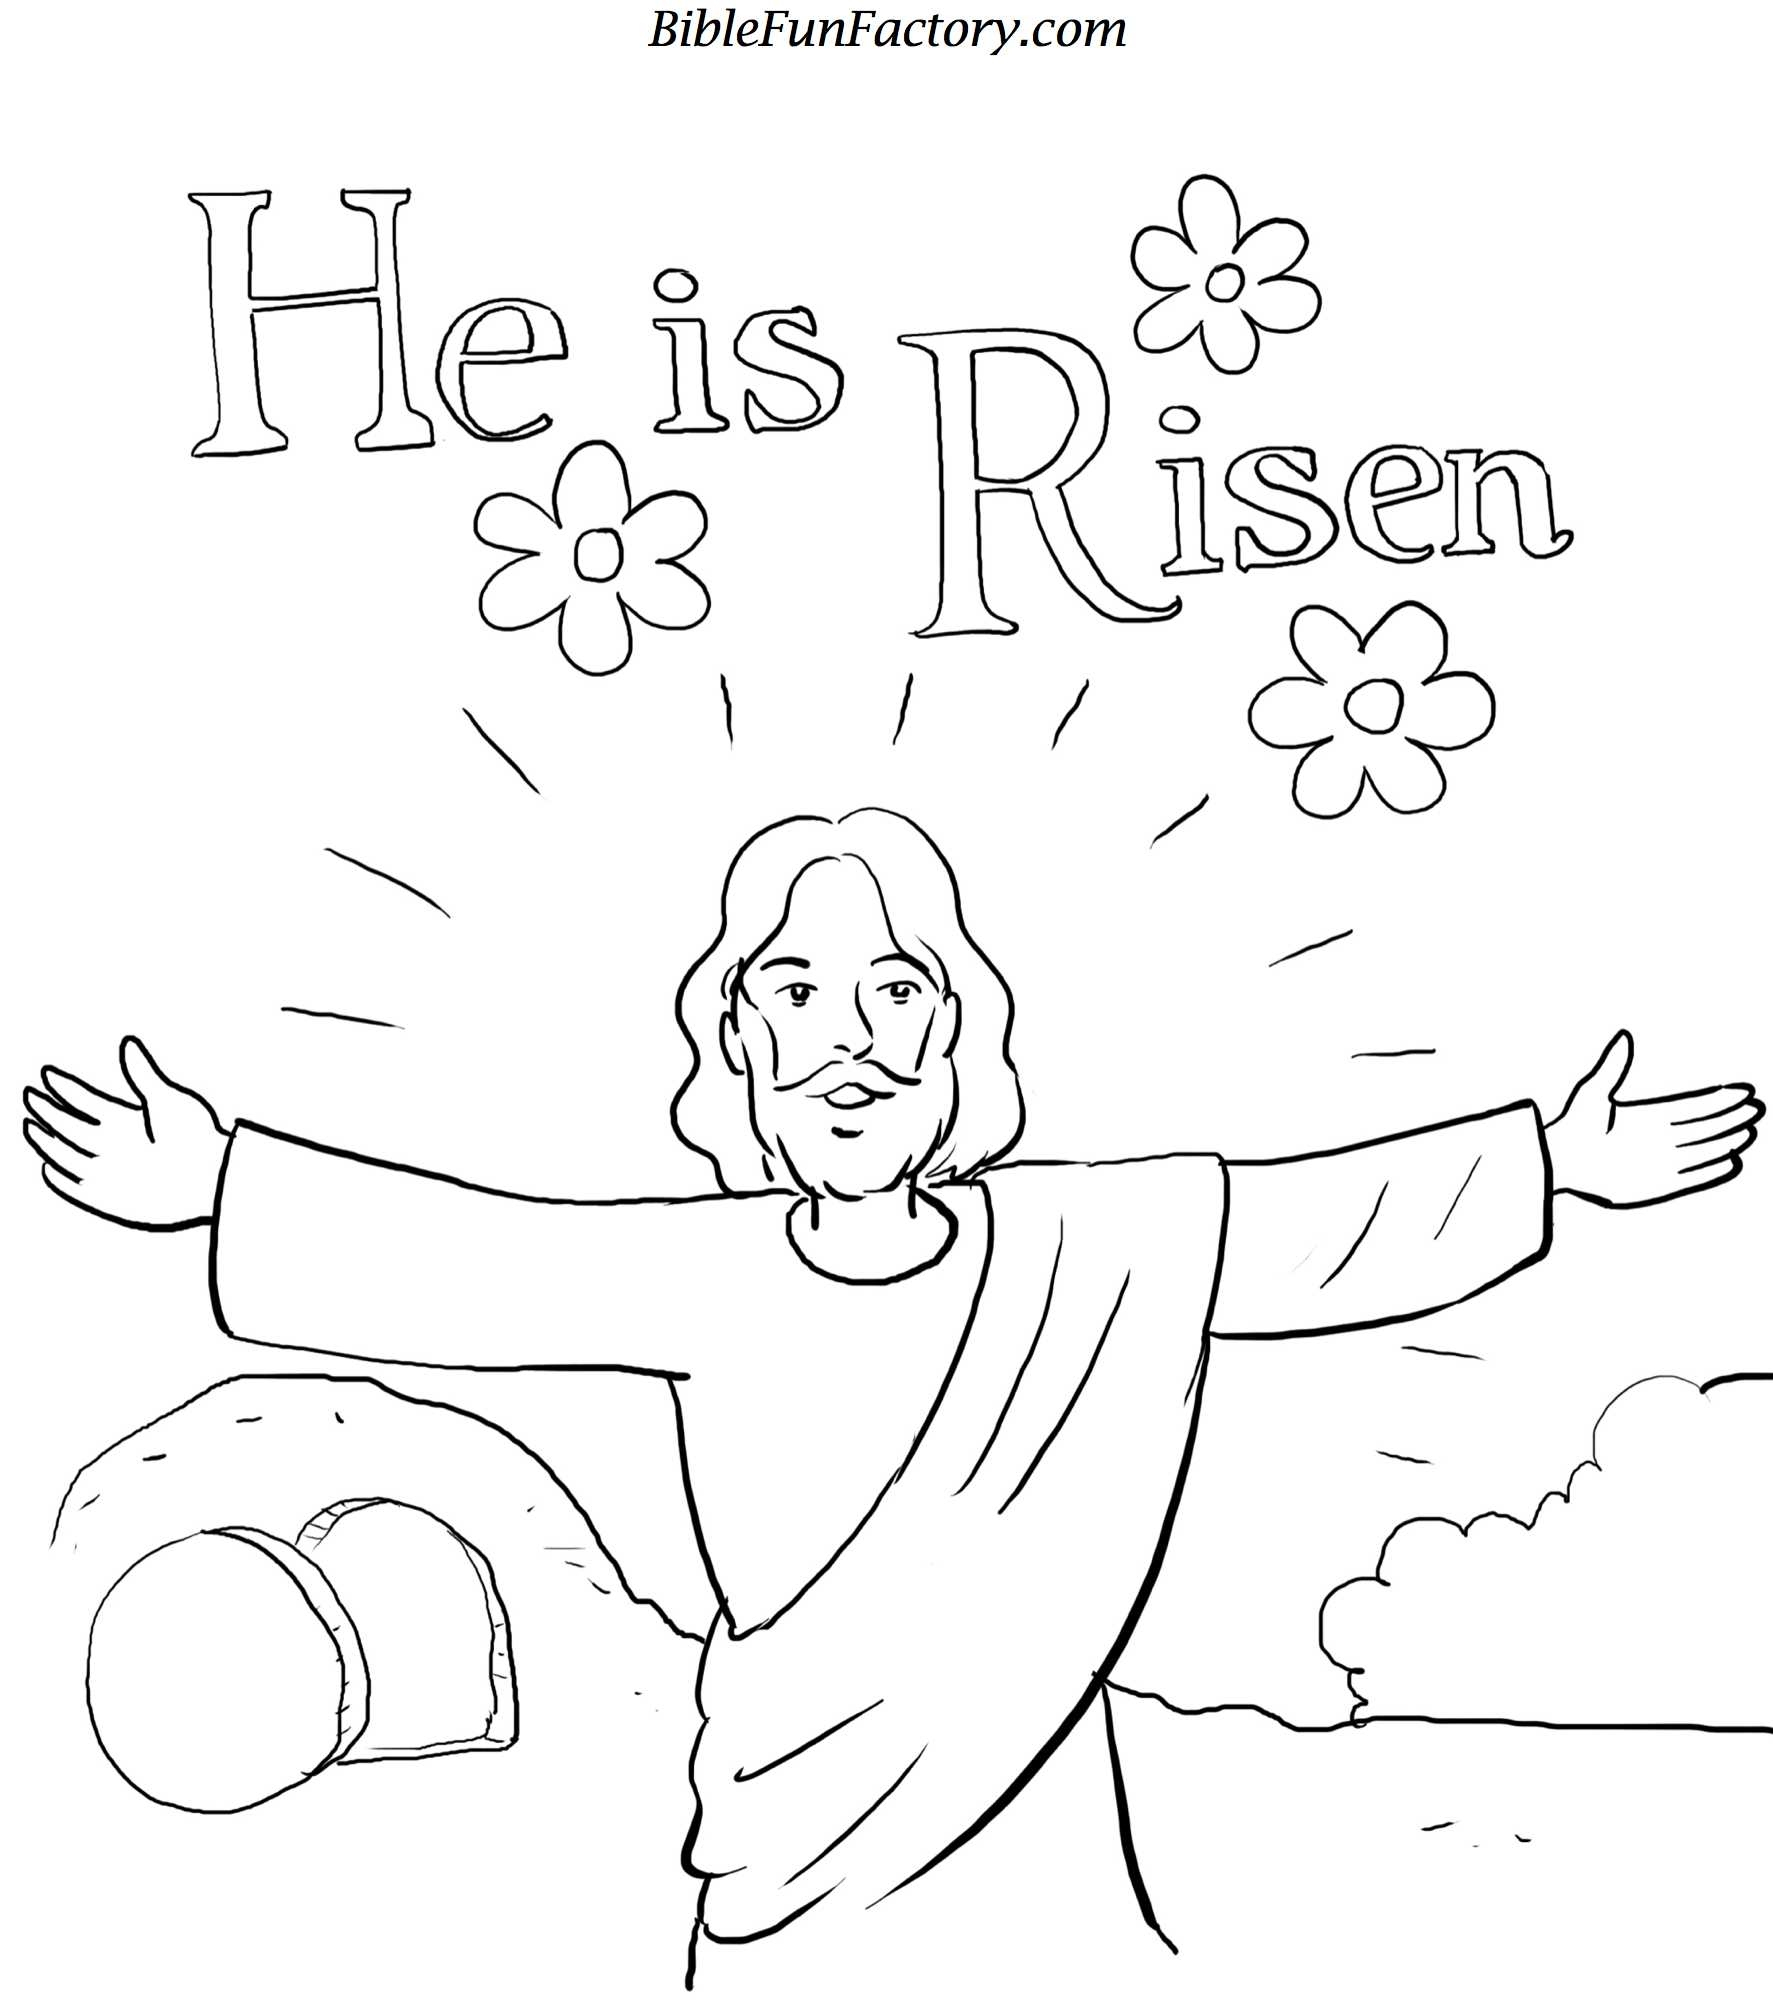 Bible Coloring Pages for Kids Luxury Bible Coloring Pages for Sunday Gallery Of Prayer Trust In the Lord Collection